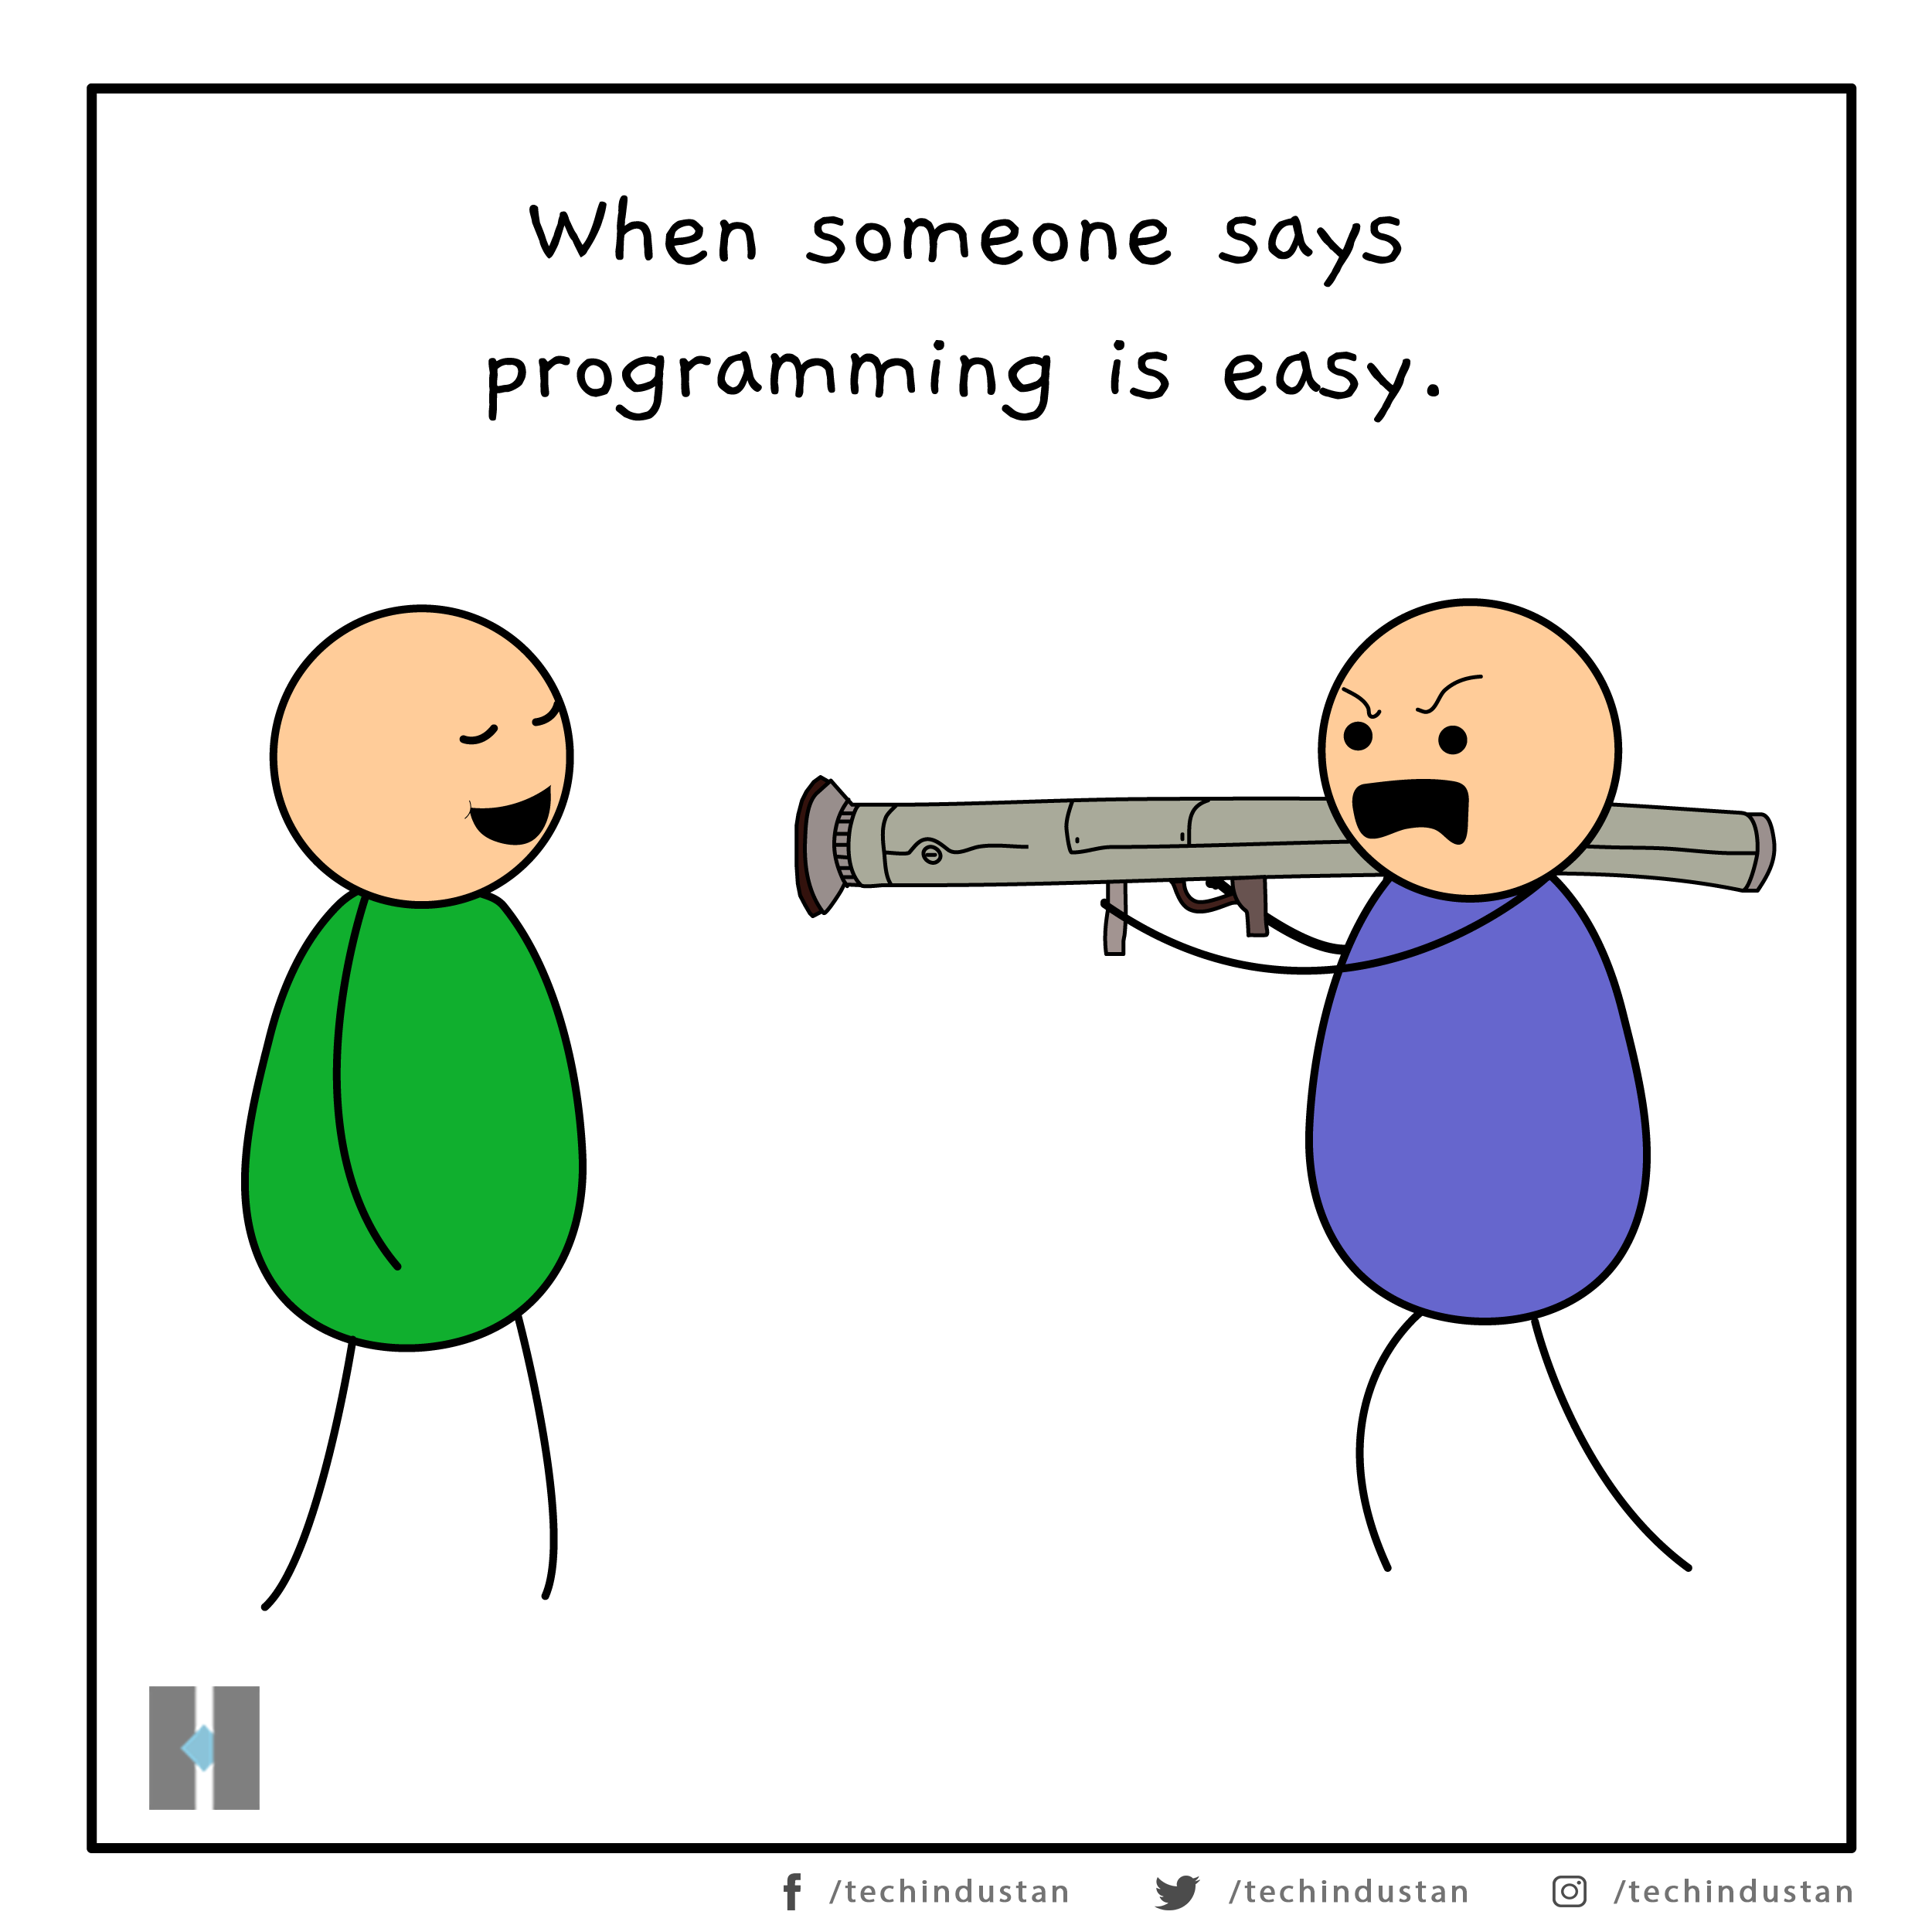 Nerd Humor What Are The Funniest Programmer Programming Pictures